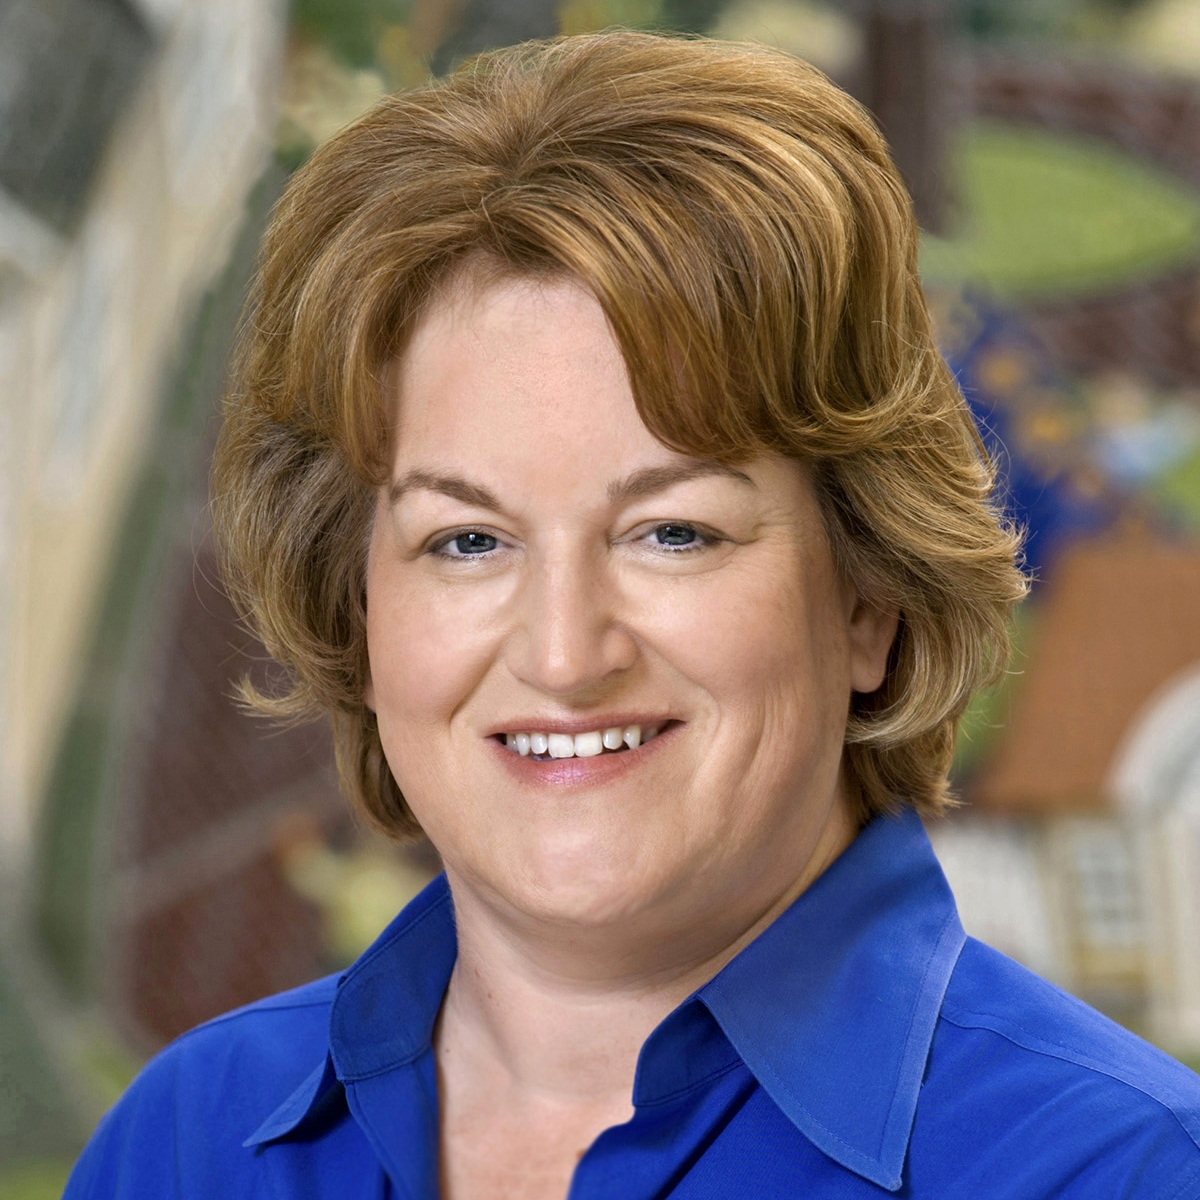 Jill Evenocheck, President & CEO, Ronald McDonald House Charities, Upper Midwest